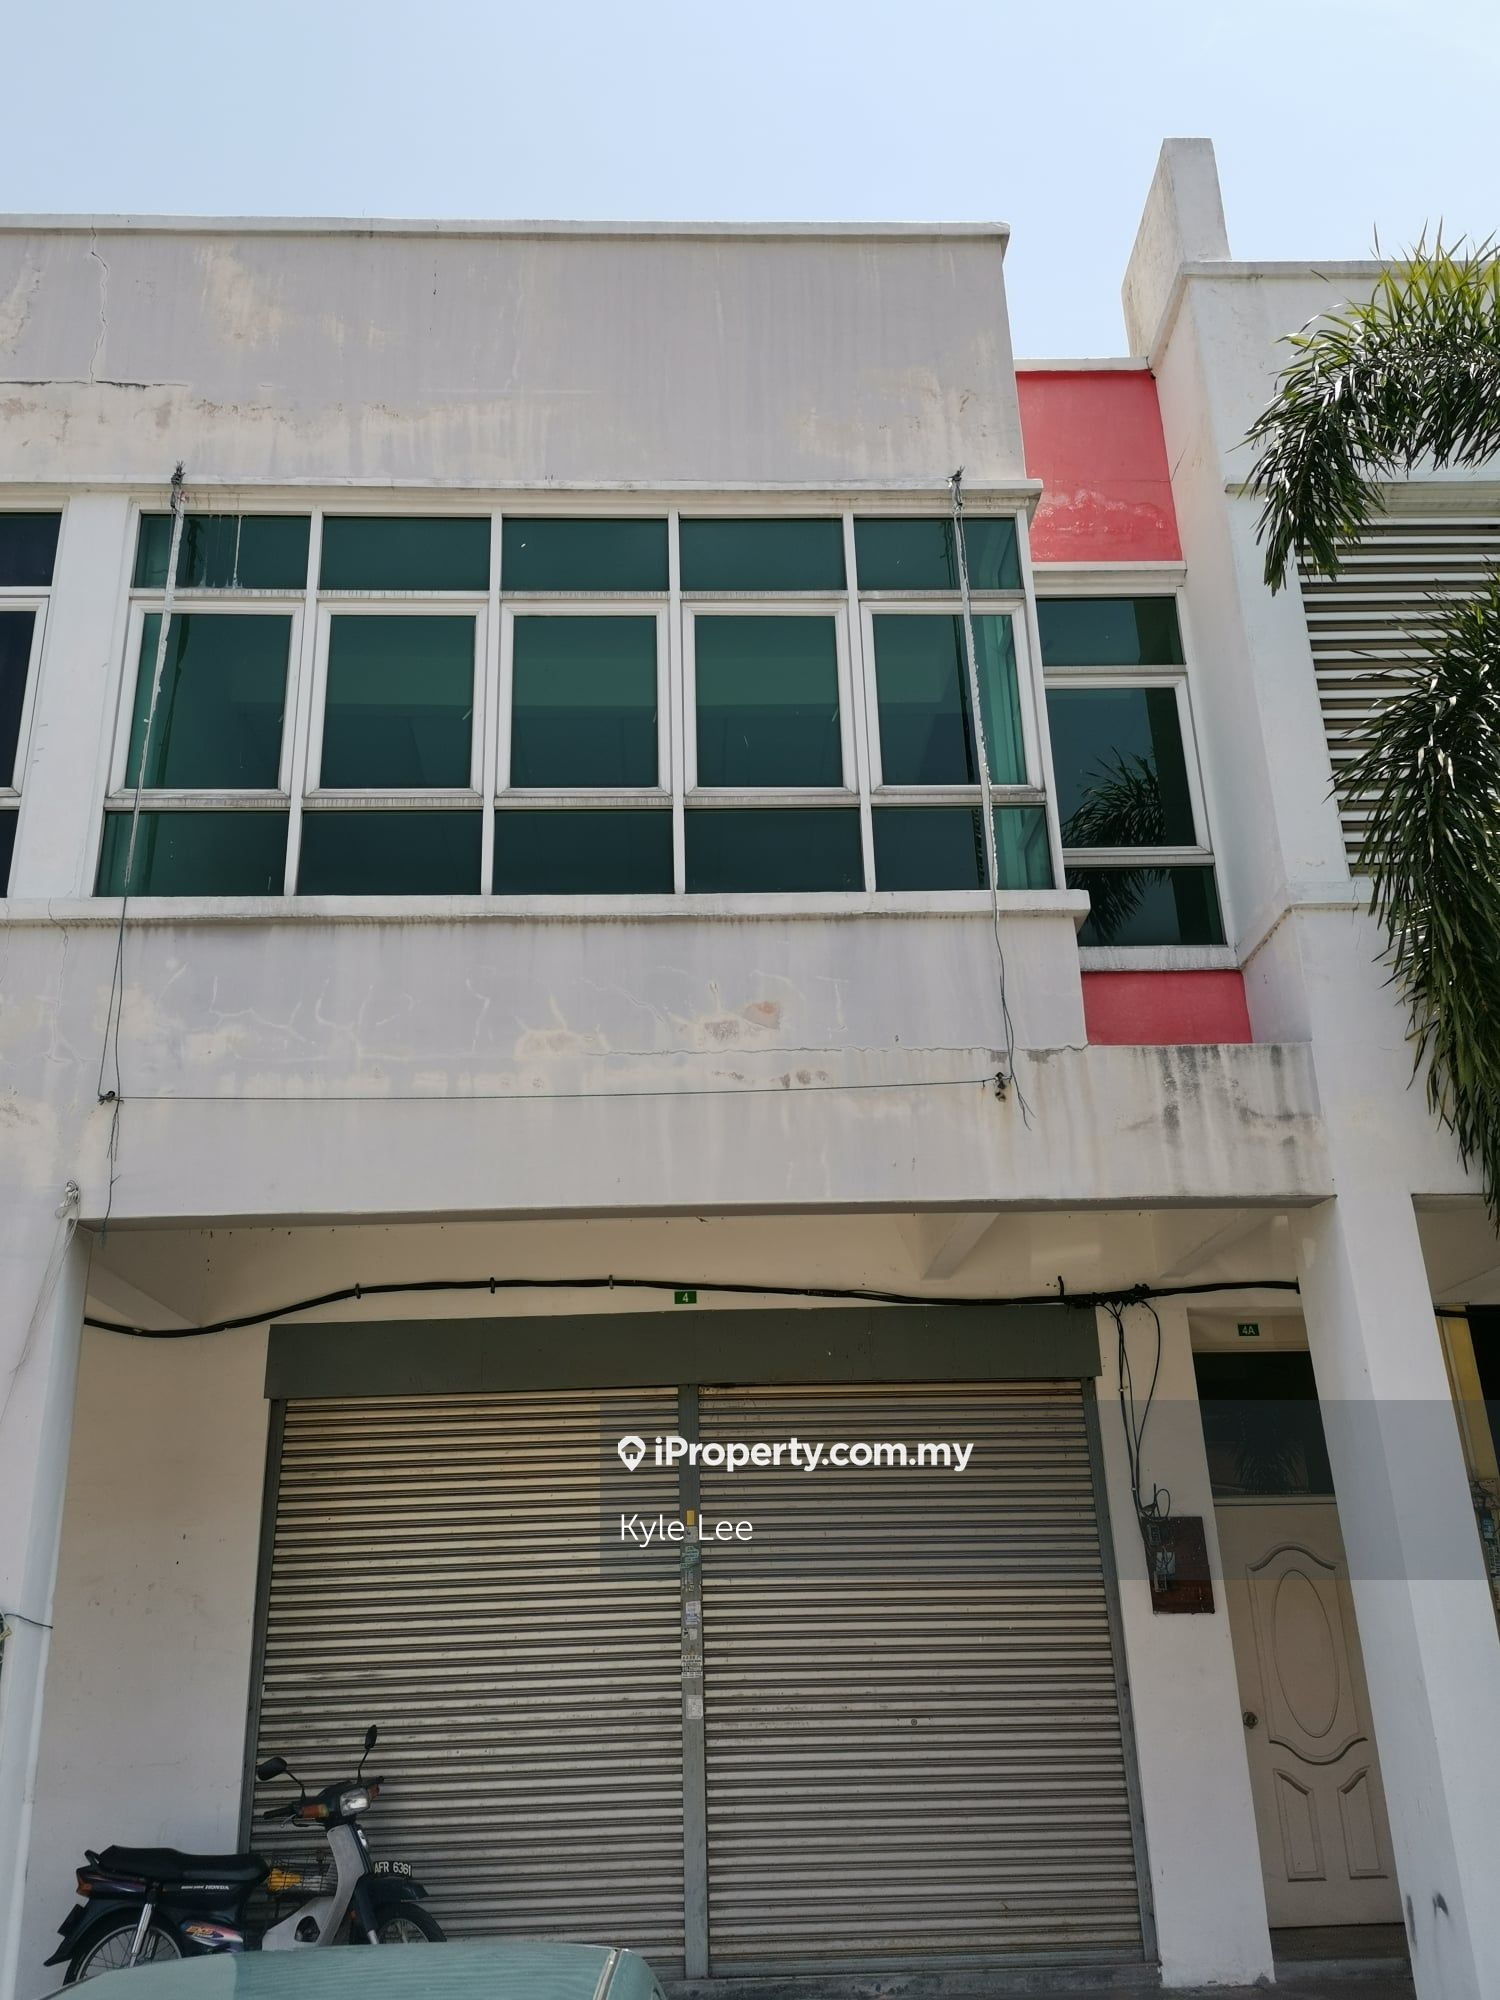 Station18 DOUBLE STY SHOP ~FREE LEGAL FEE AND STAMP DUTY~ RM3000 BOOKING, Station 18, Ipoh